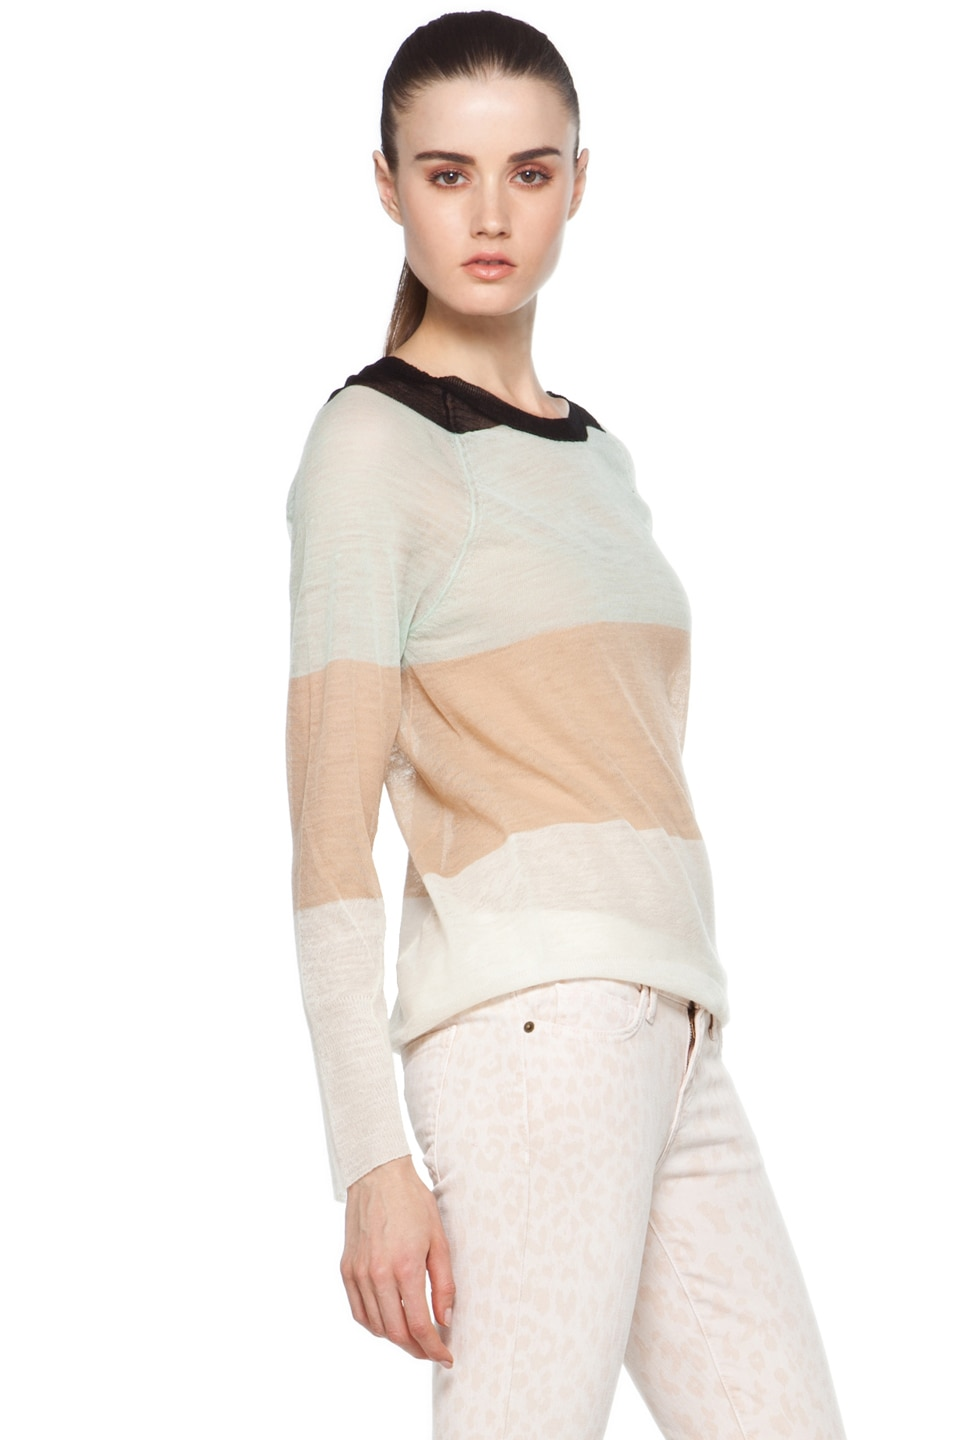 Image 3 of A.L.C. Cole Rugby Stripe Top in White/Beige/Mint/Black